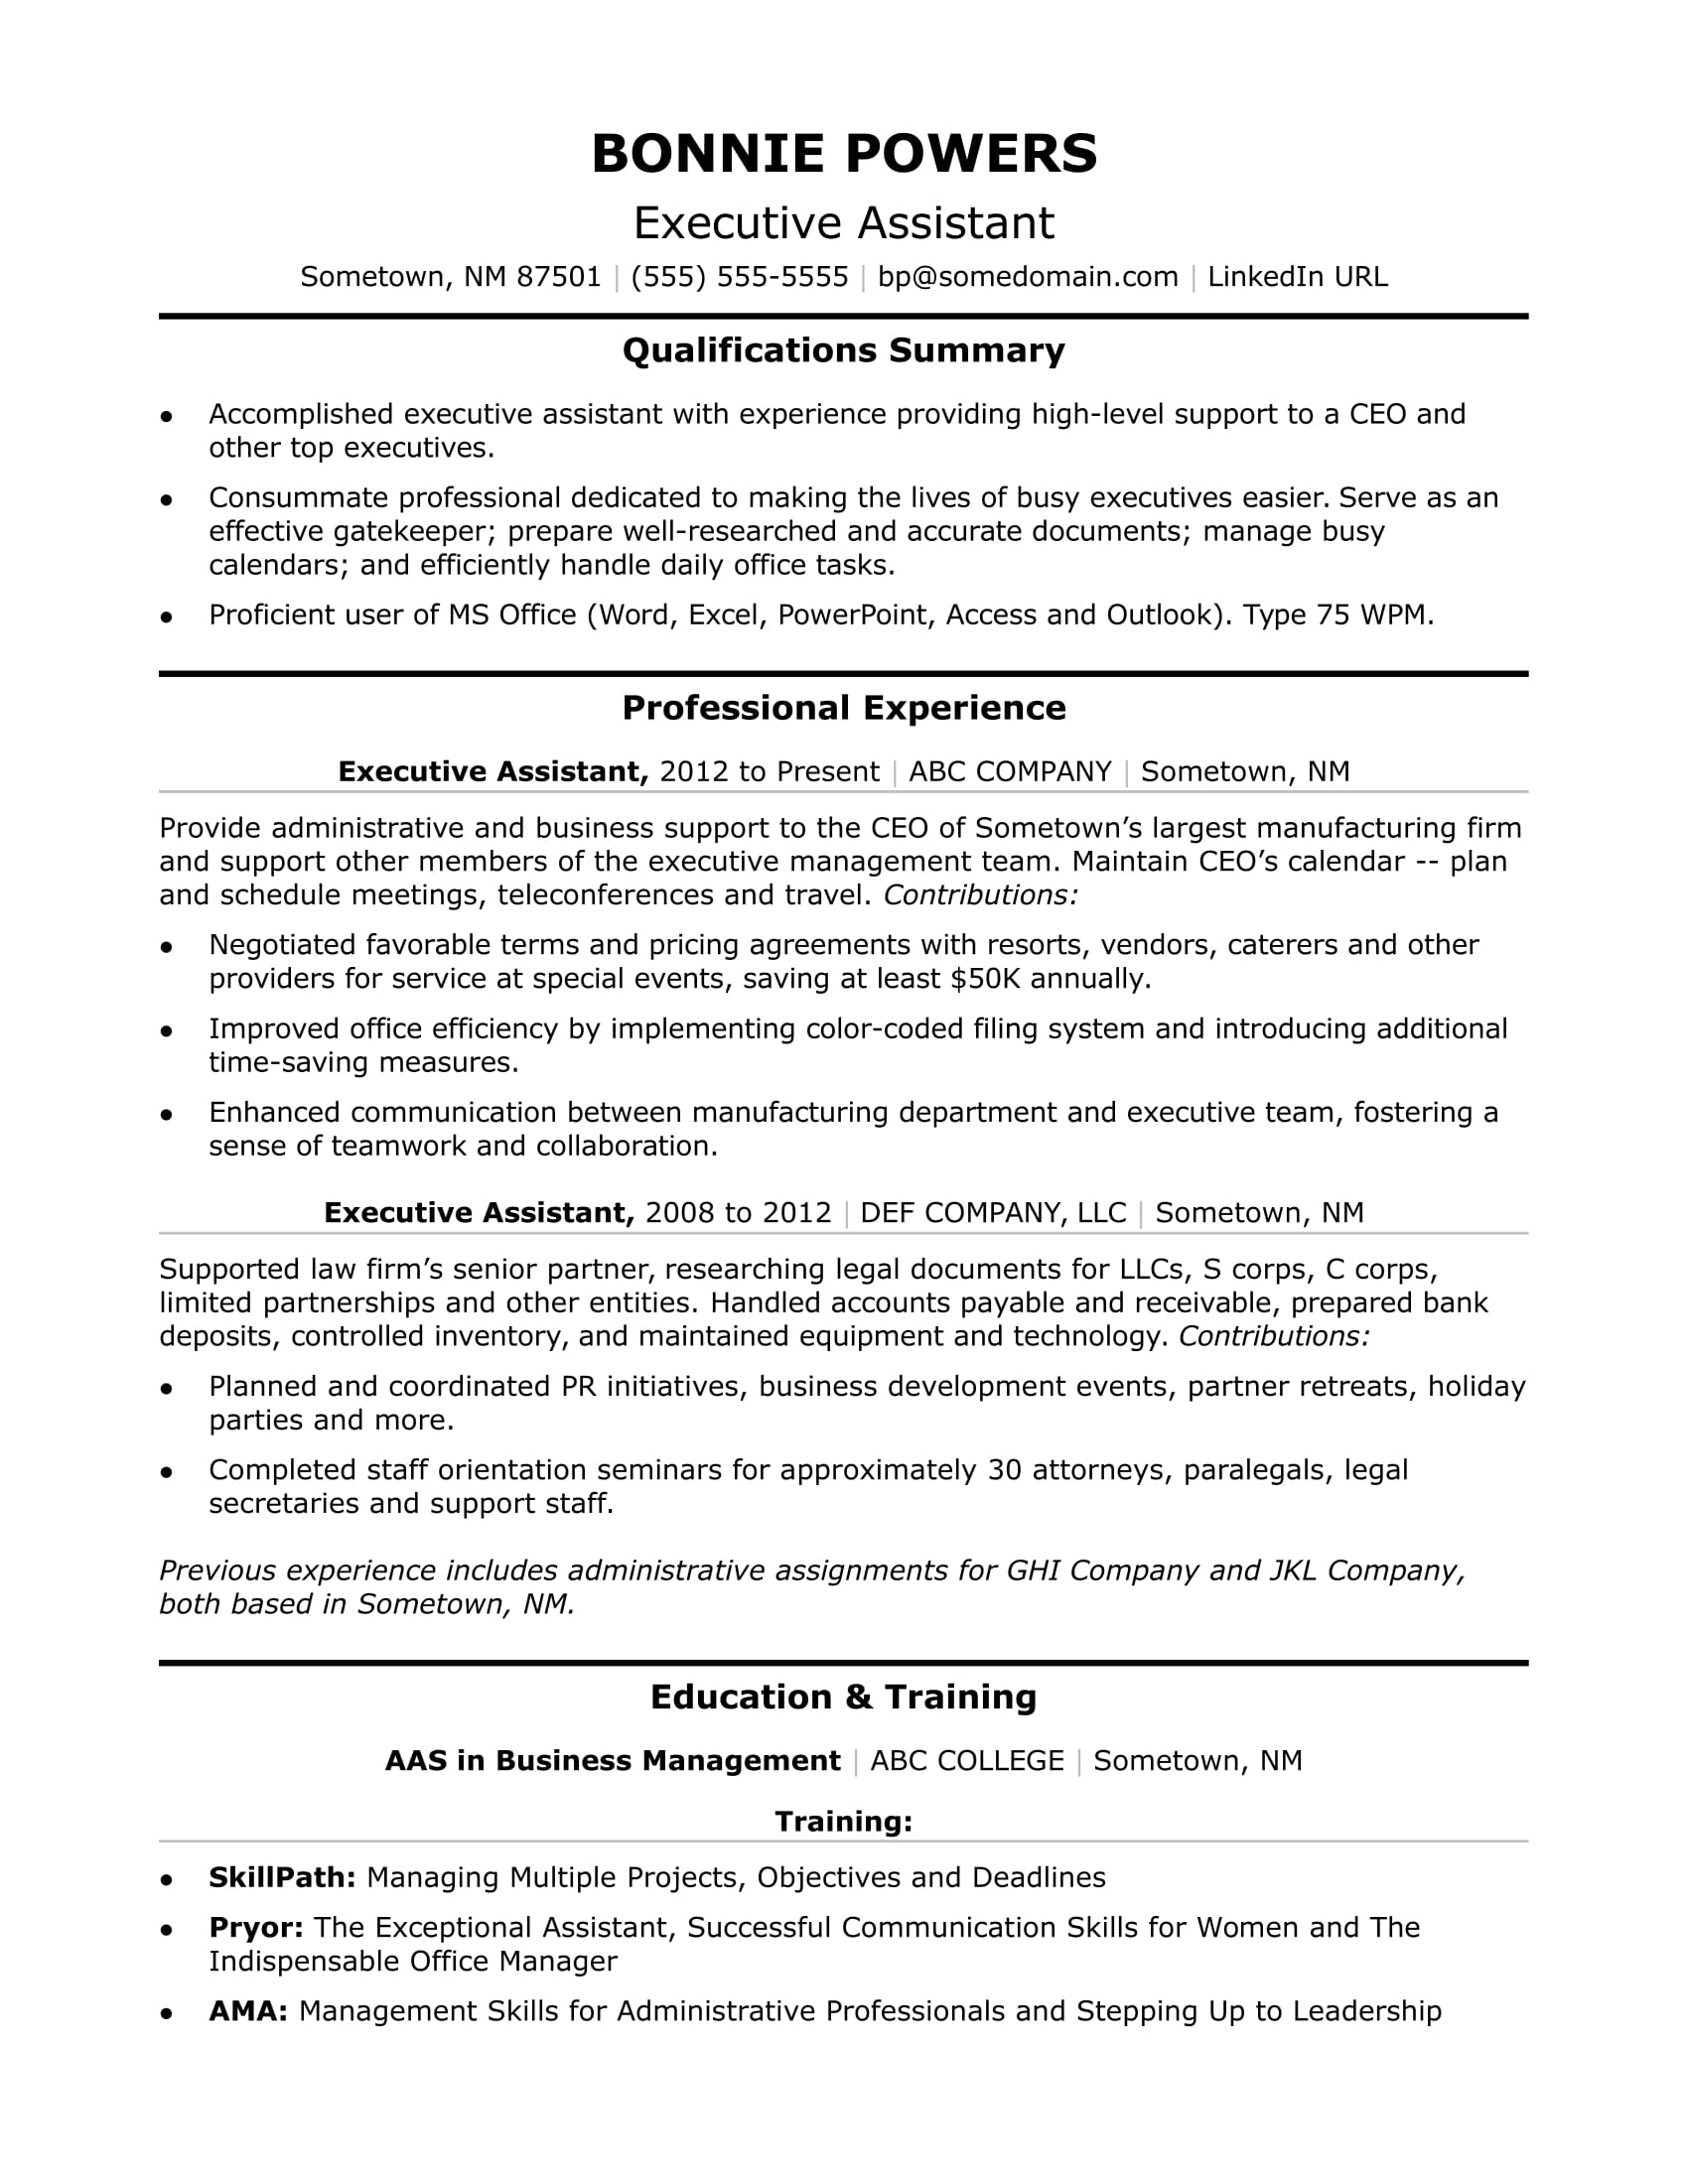 executive administrative assistant resume sample monster entry level office font pairing Resume Entry Level Office Assistant Resume